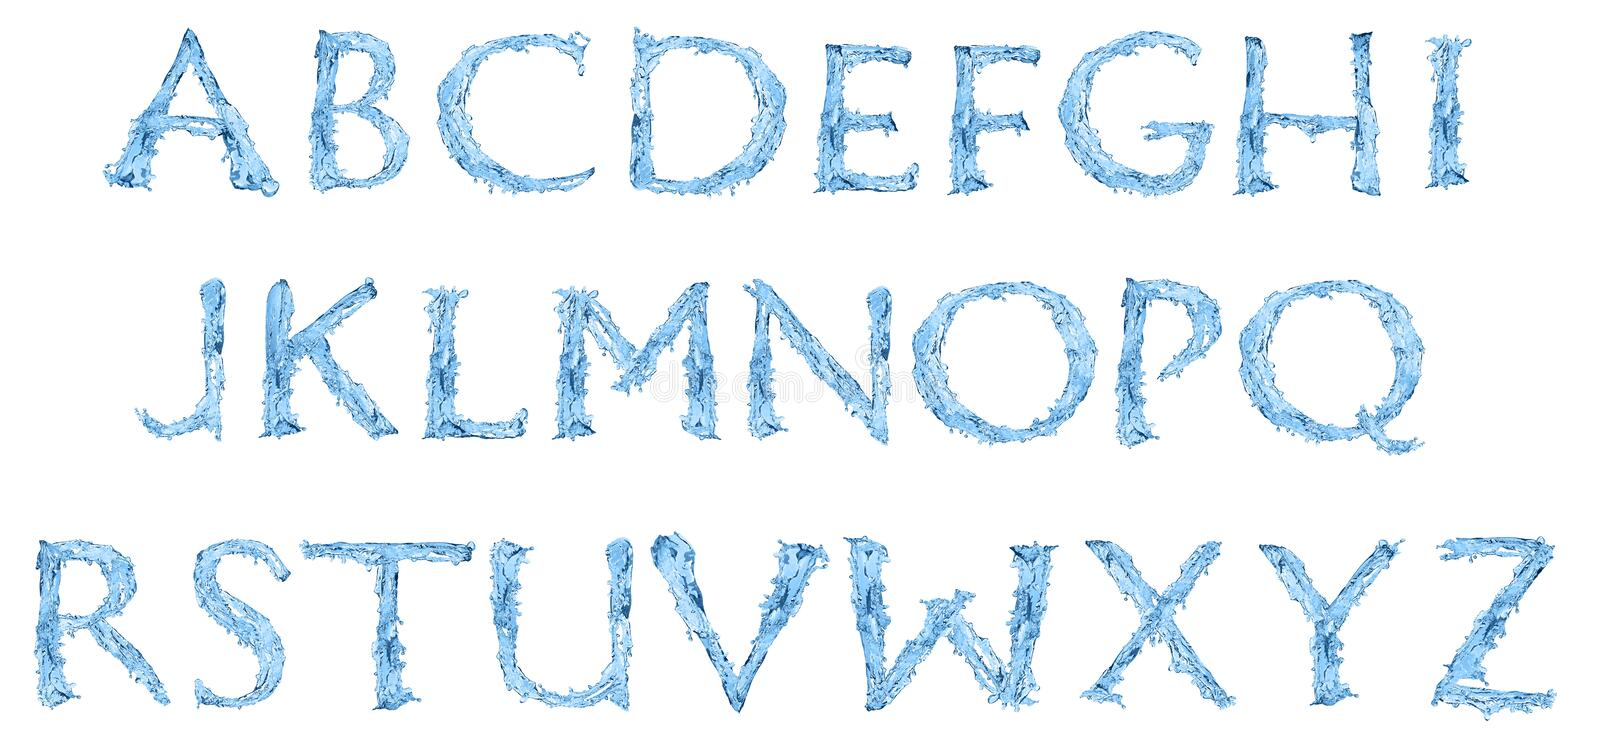 Alphabet made of frozen water vector illustration